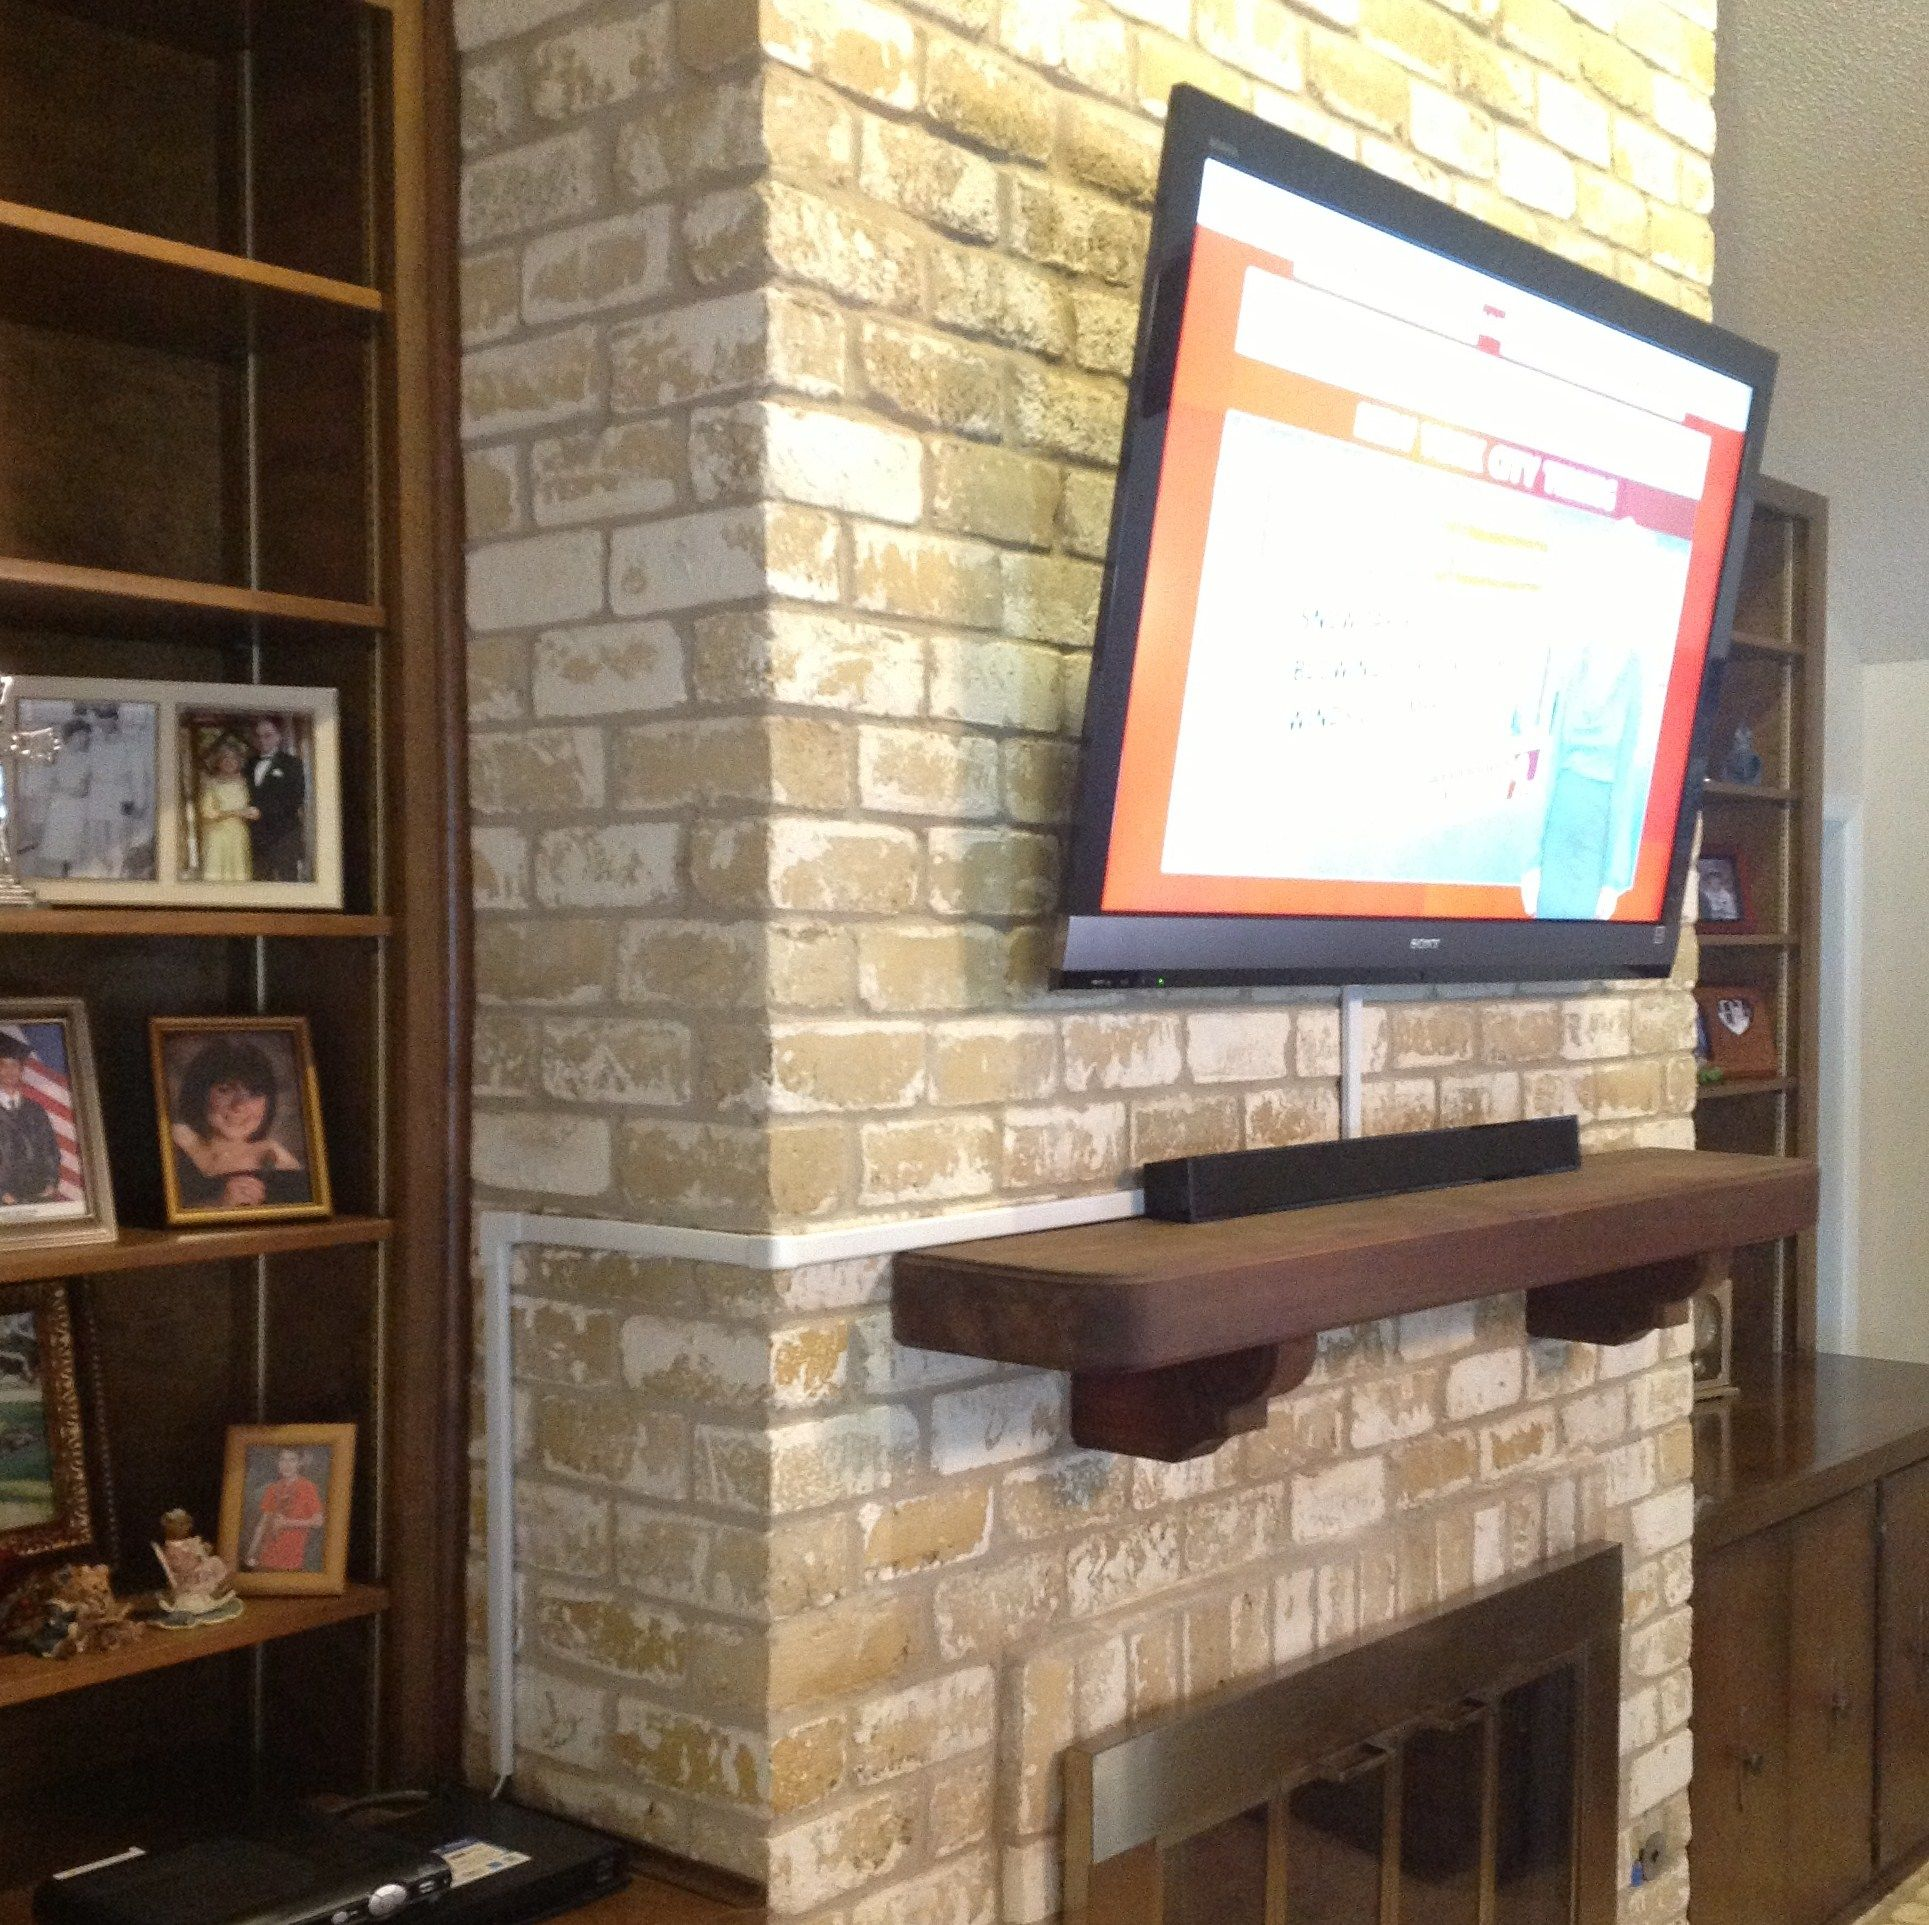 Vesta Tv Installation Over A Fireplace Pictures Wall Mounted Tv